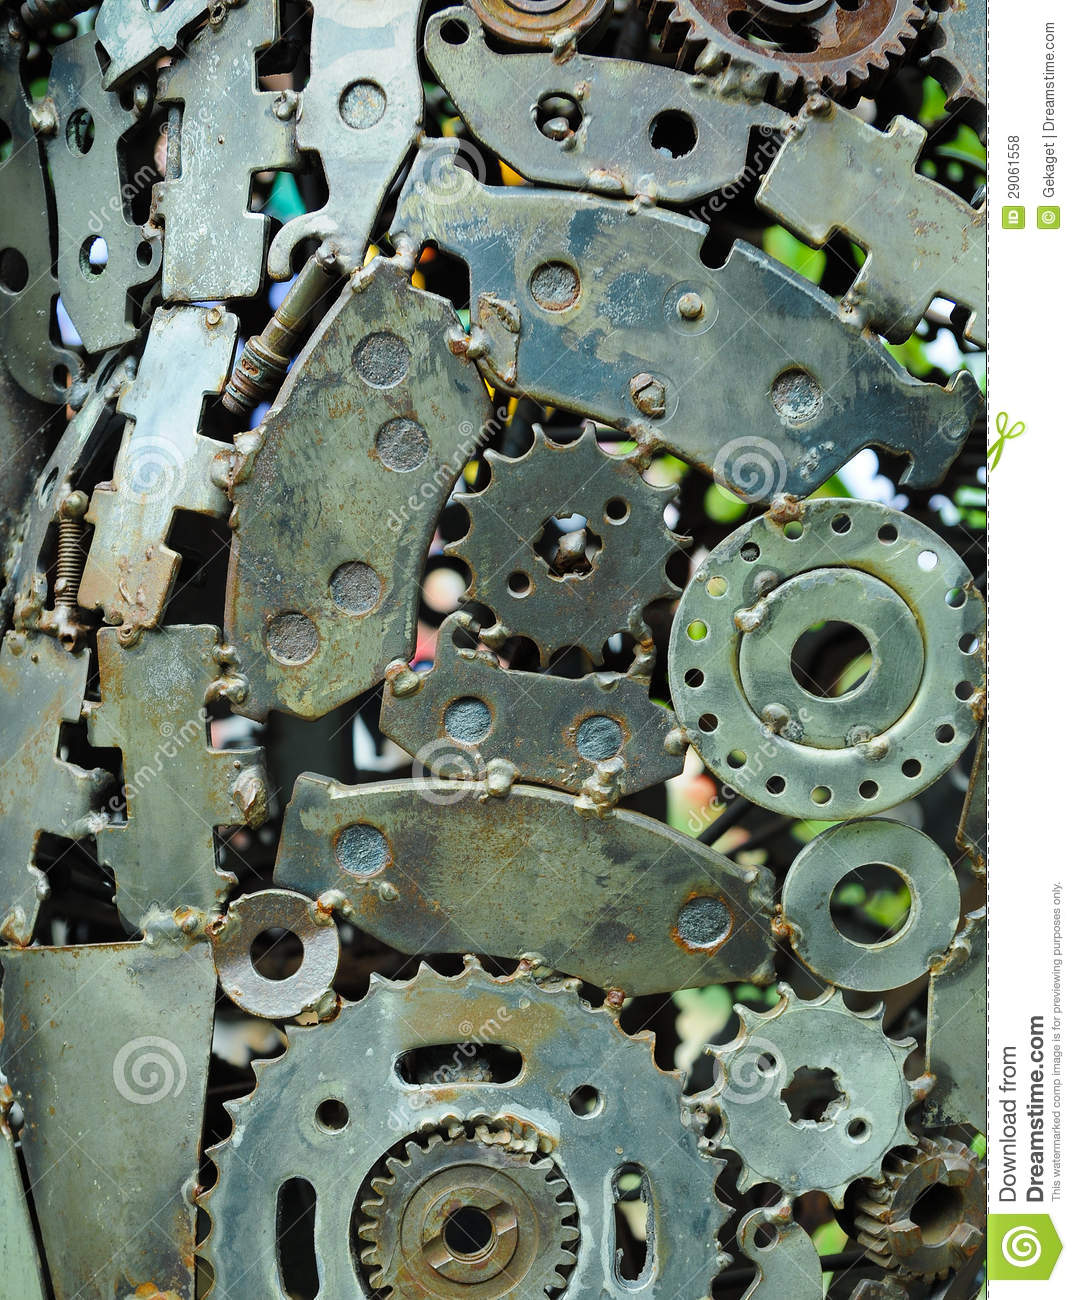 Hq Old Machinery Parts : Background of old machine parts stock photo image